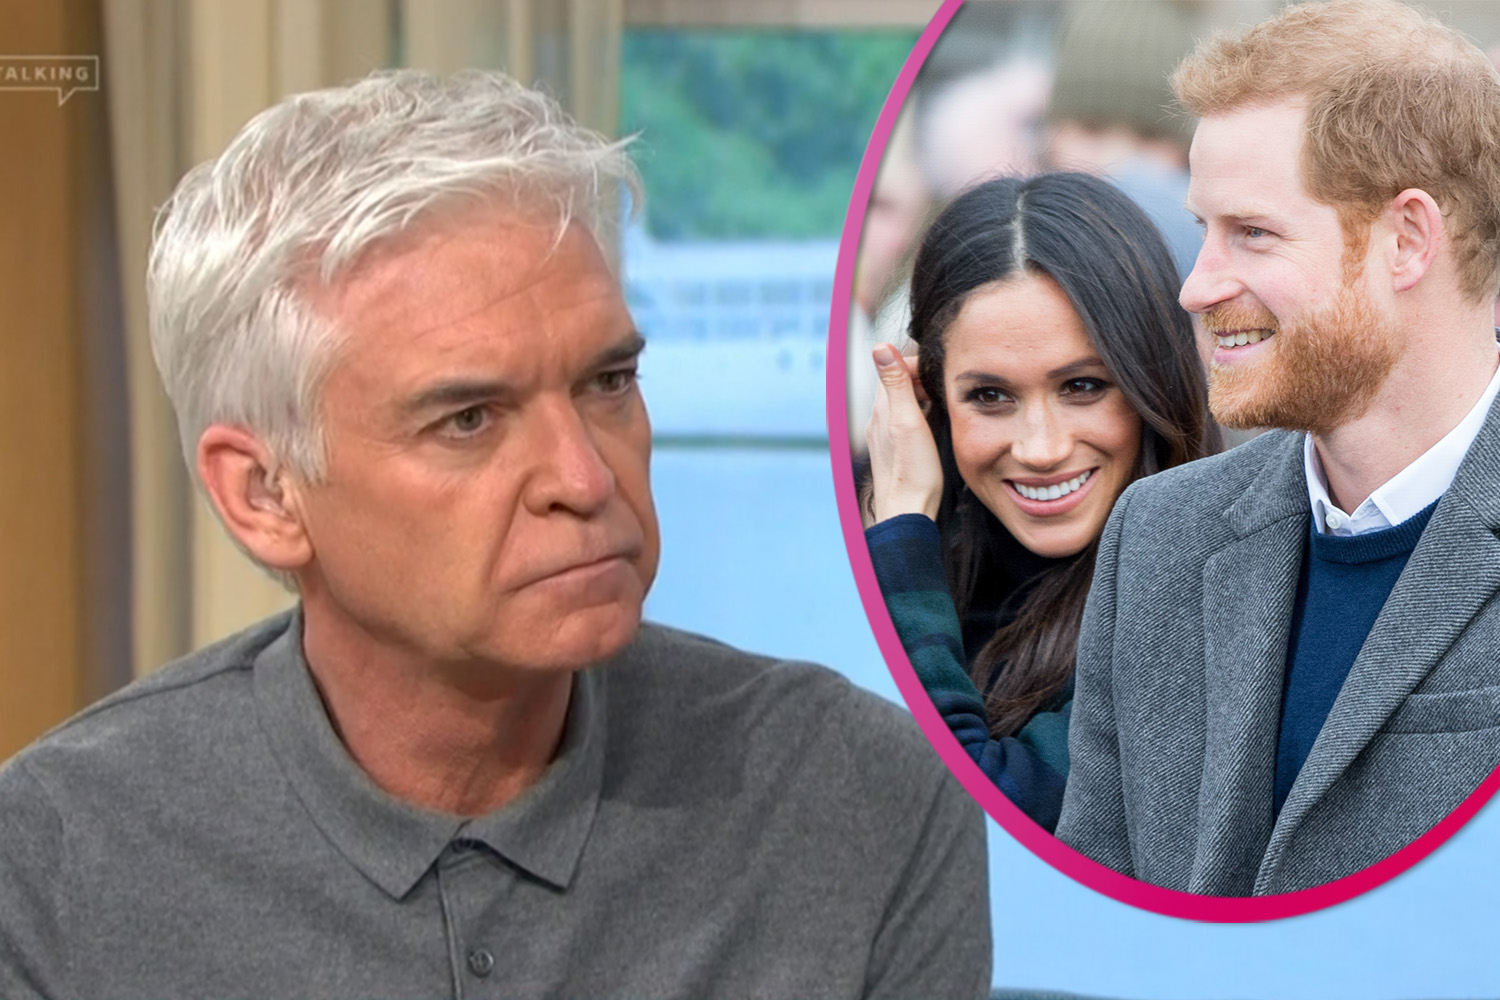 Phillip Schofield fears Prince Harry 'isn't wired' for LA as he and 'Meghan set up home in US'